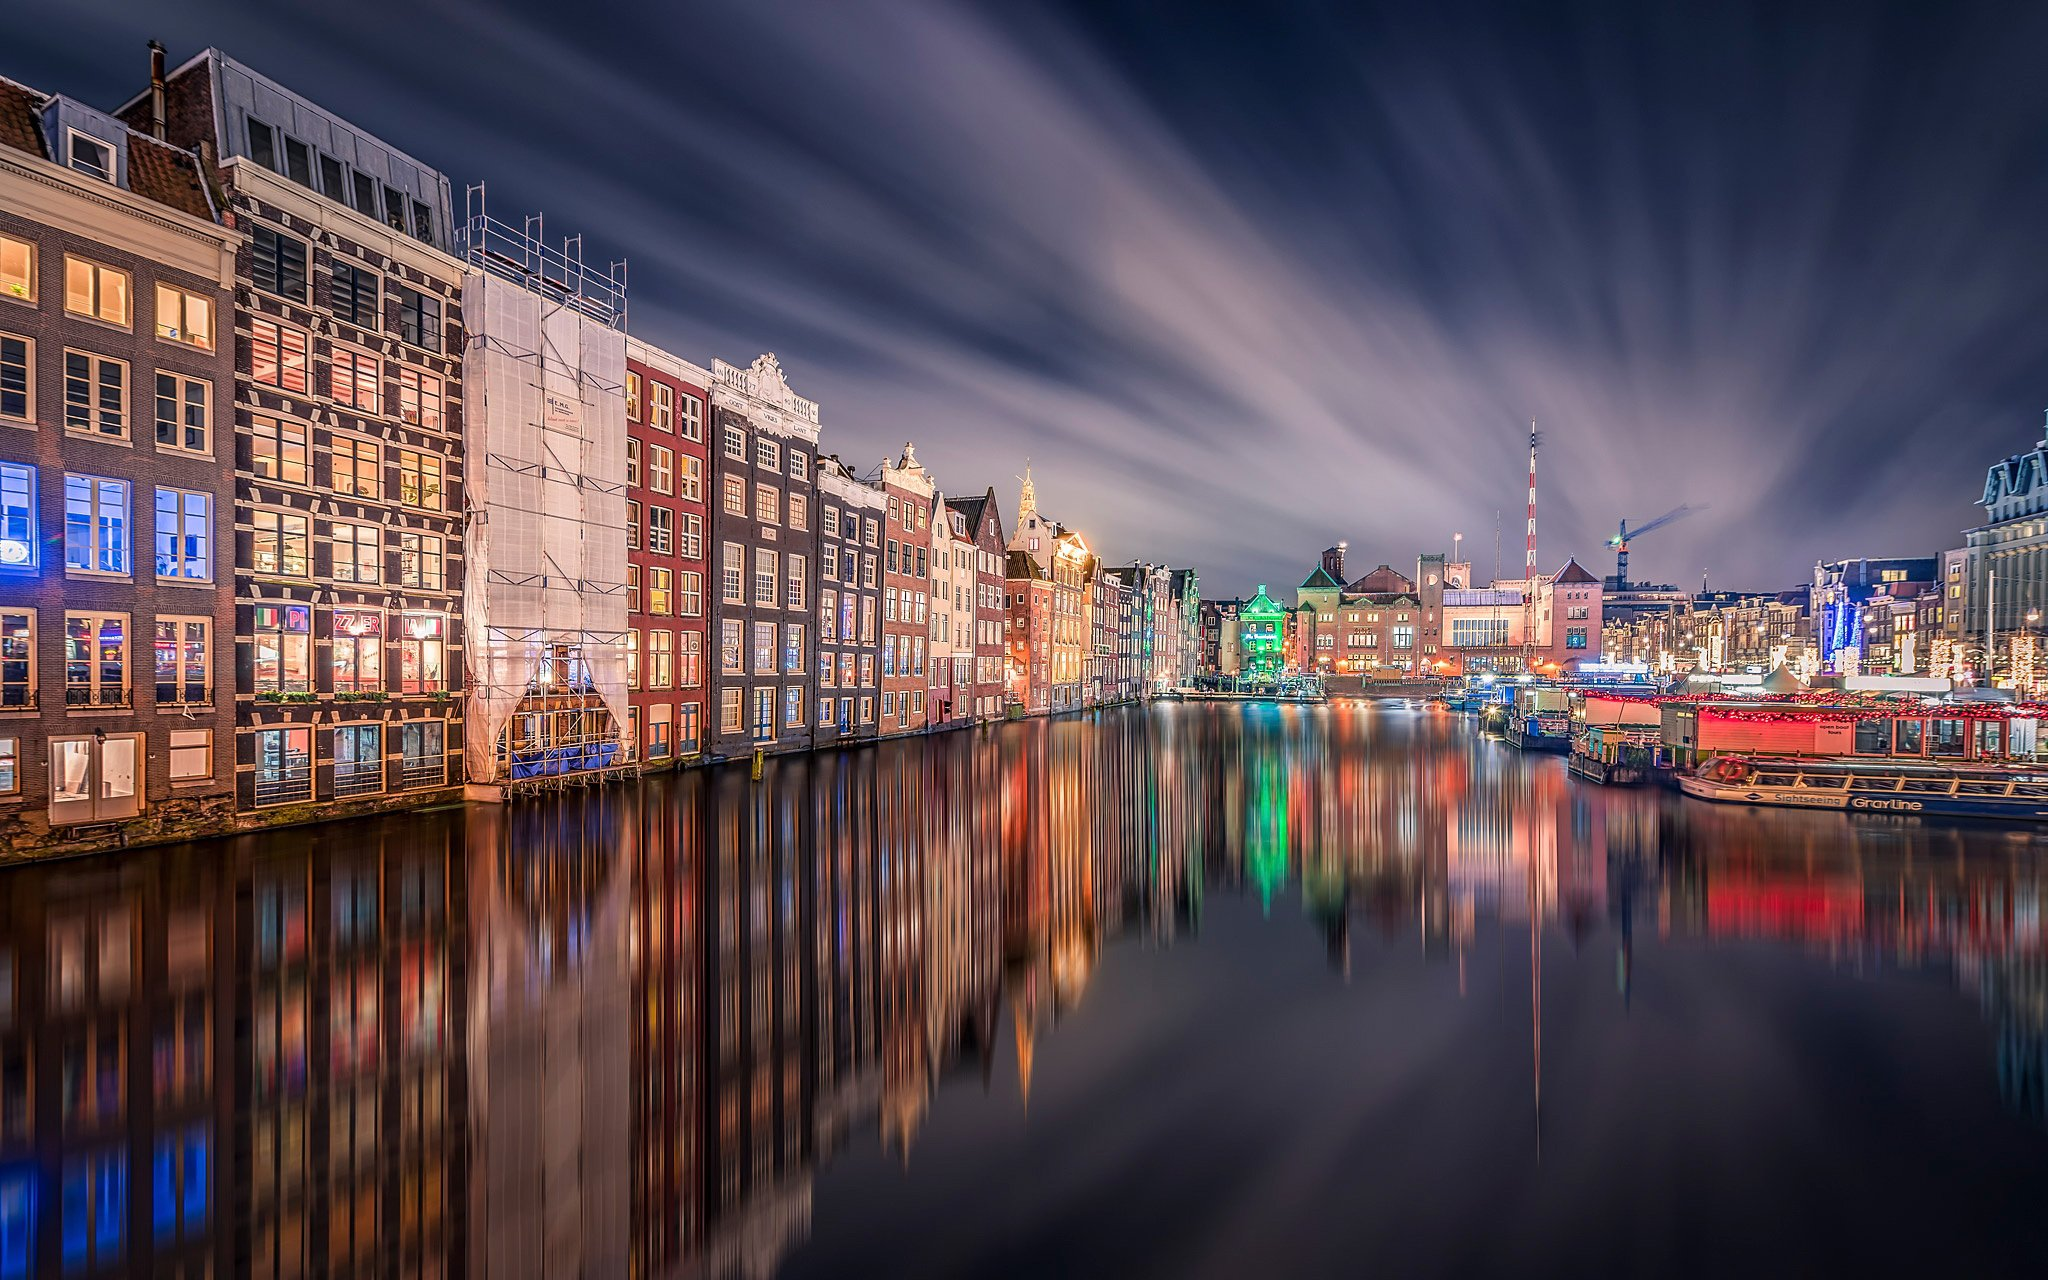 Night Grand Central Station Houses Amsterdam Reflection